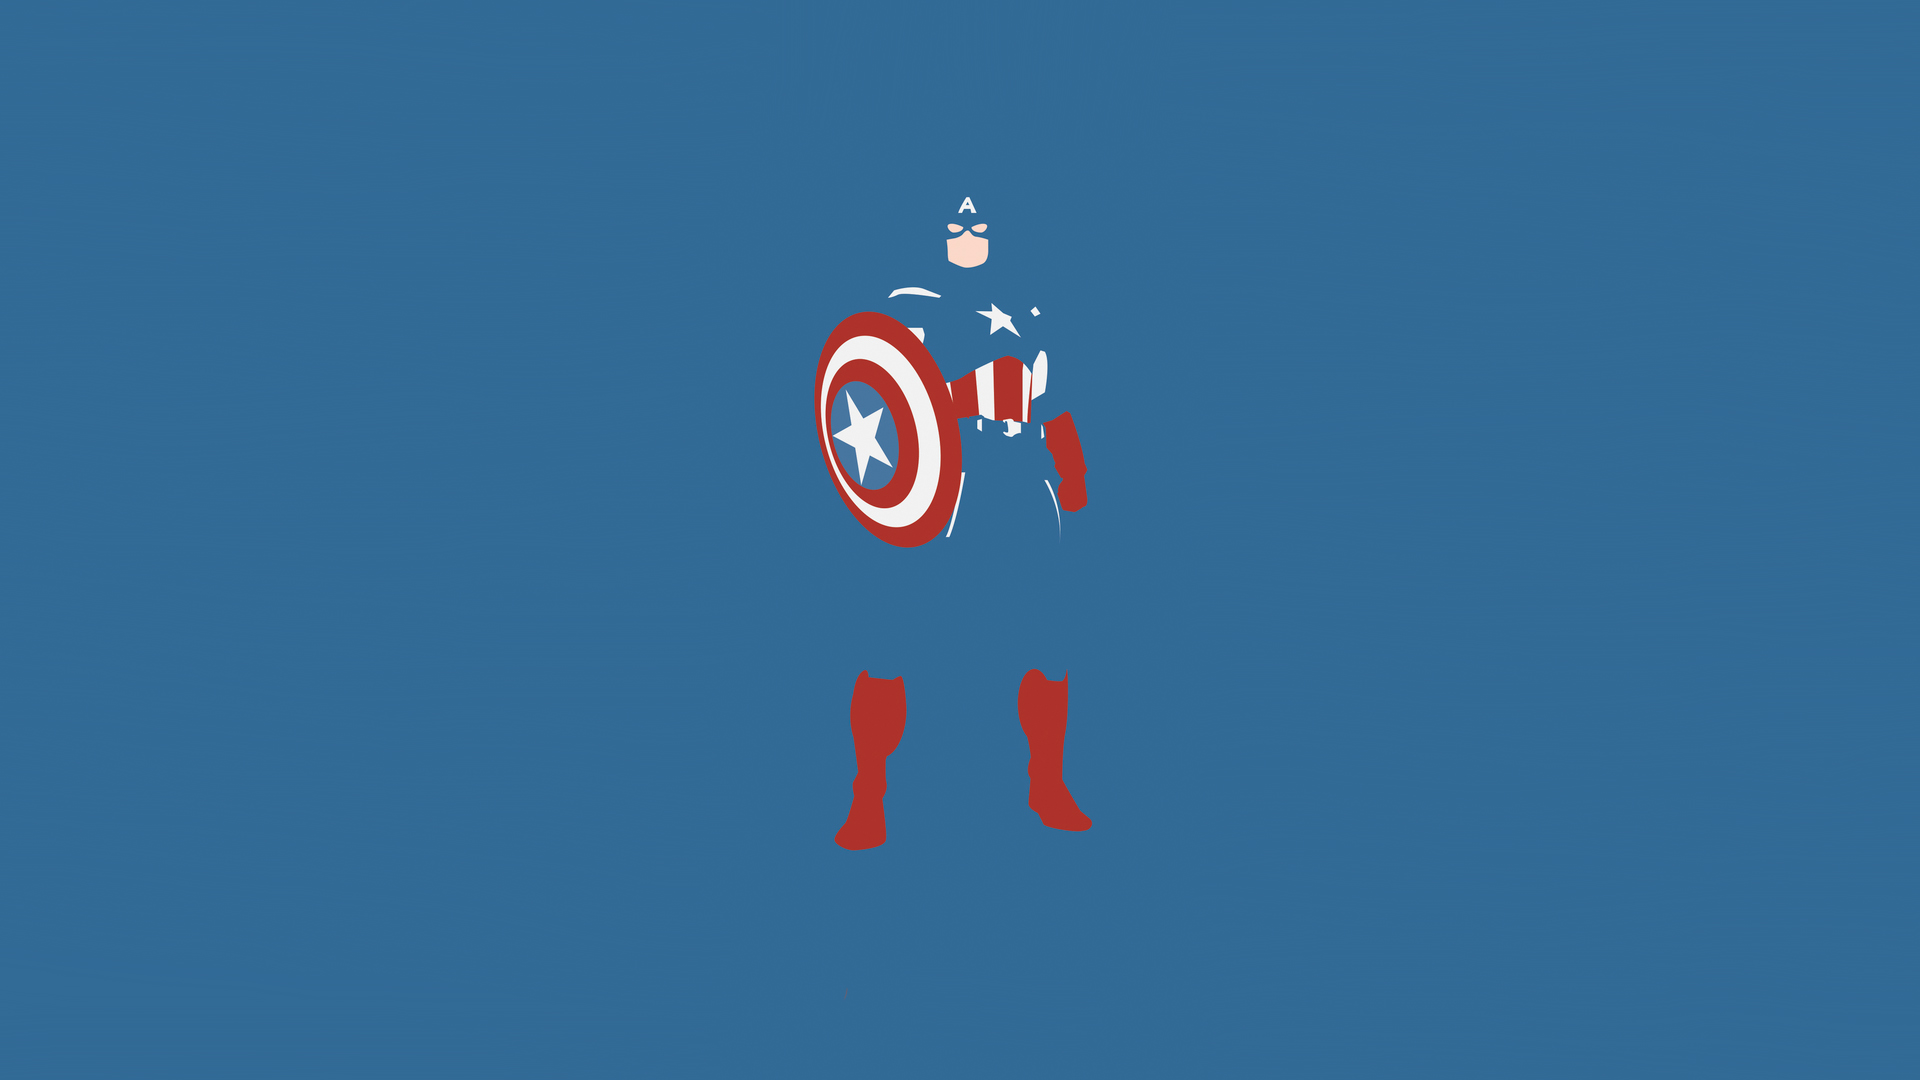 Captain America Marvel Comics Minimalism Hd Artist 4k Wallpapers Images Backgrounds Photos And Pictures